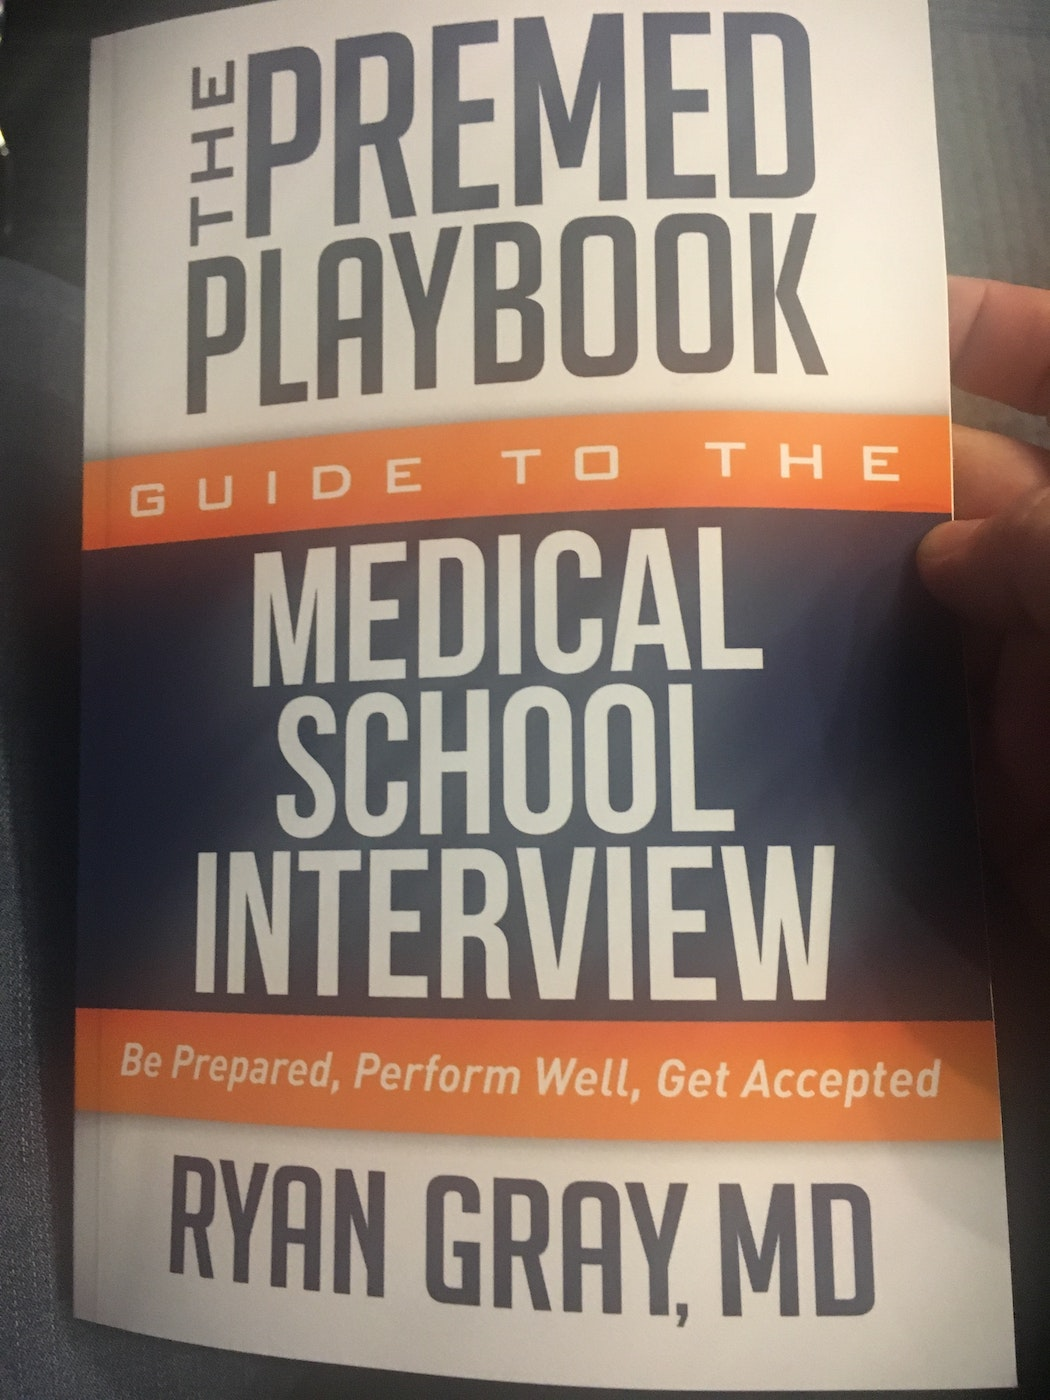 this is hands down the best book to to prepare for the this is hands down the best book to to prepare for the medical school interview i this book and it honestly made me think of what my answers